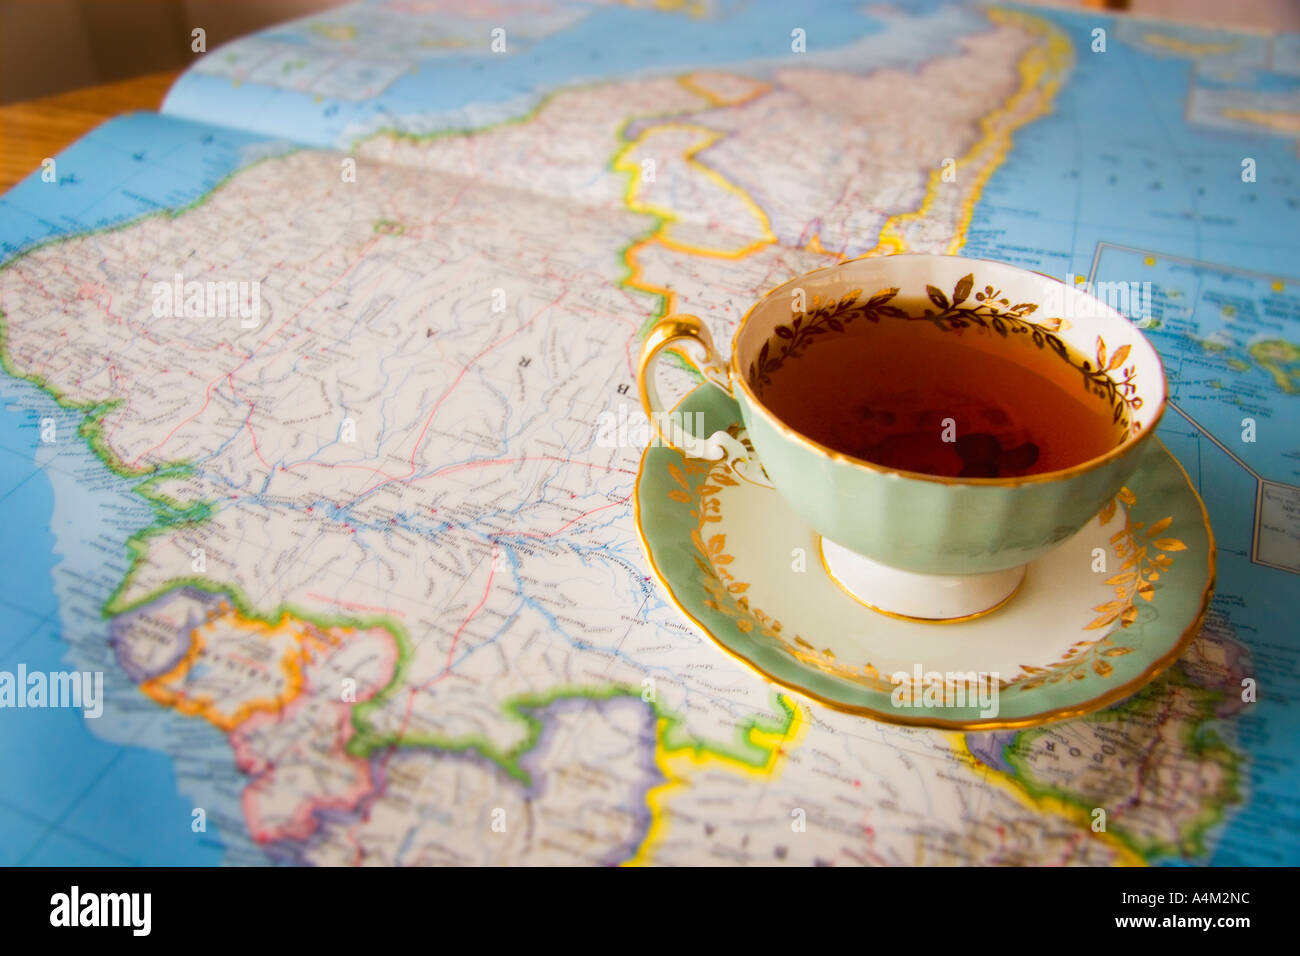 Map with a cup of tea - Stock Image